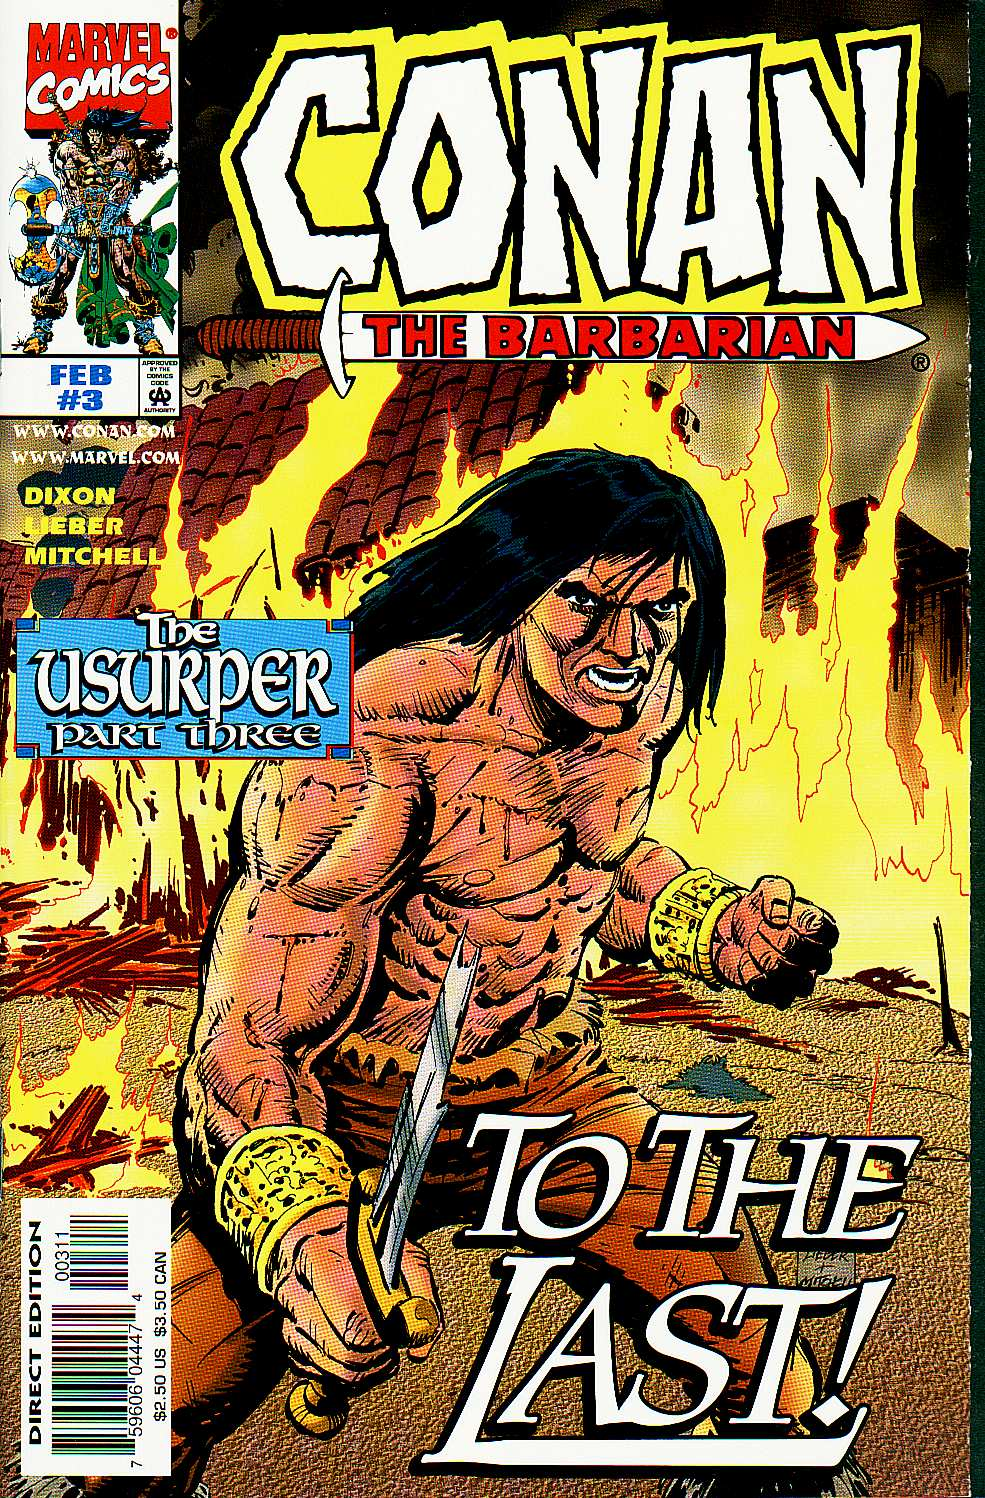 Conan the Barbarian: The Usurper (1997) #3, cover penciled by Steve Lieber & inked by Steve Mitchell.